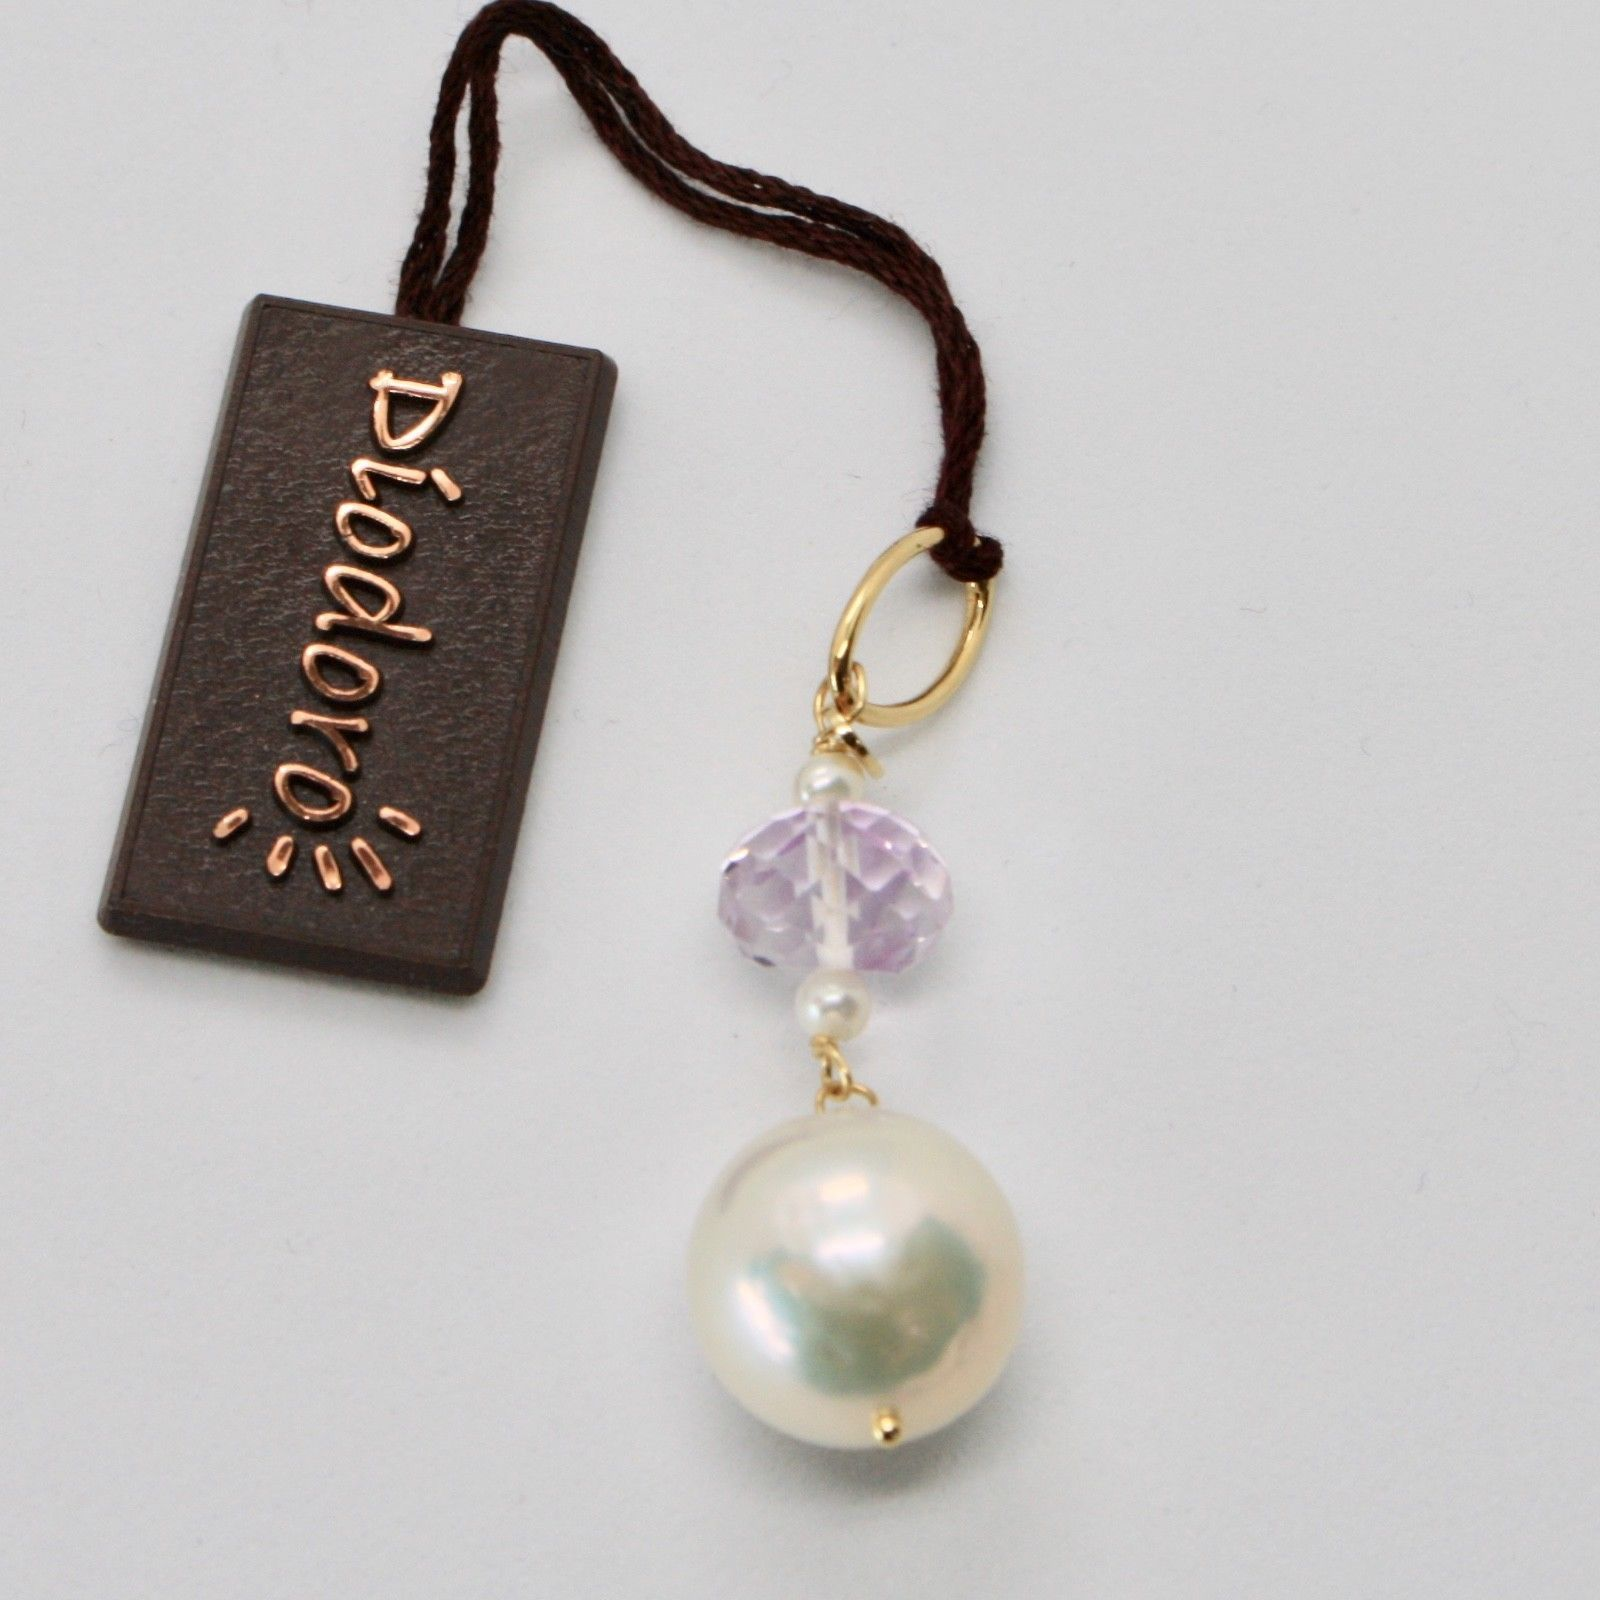 SOLID 18K YELLOW GOLD PENDANT WITH WHITE FW PEARL AND AMETHYST MADE IN ITALY